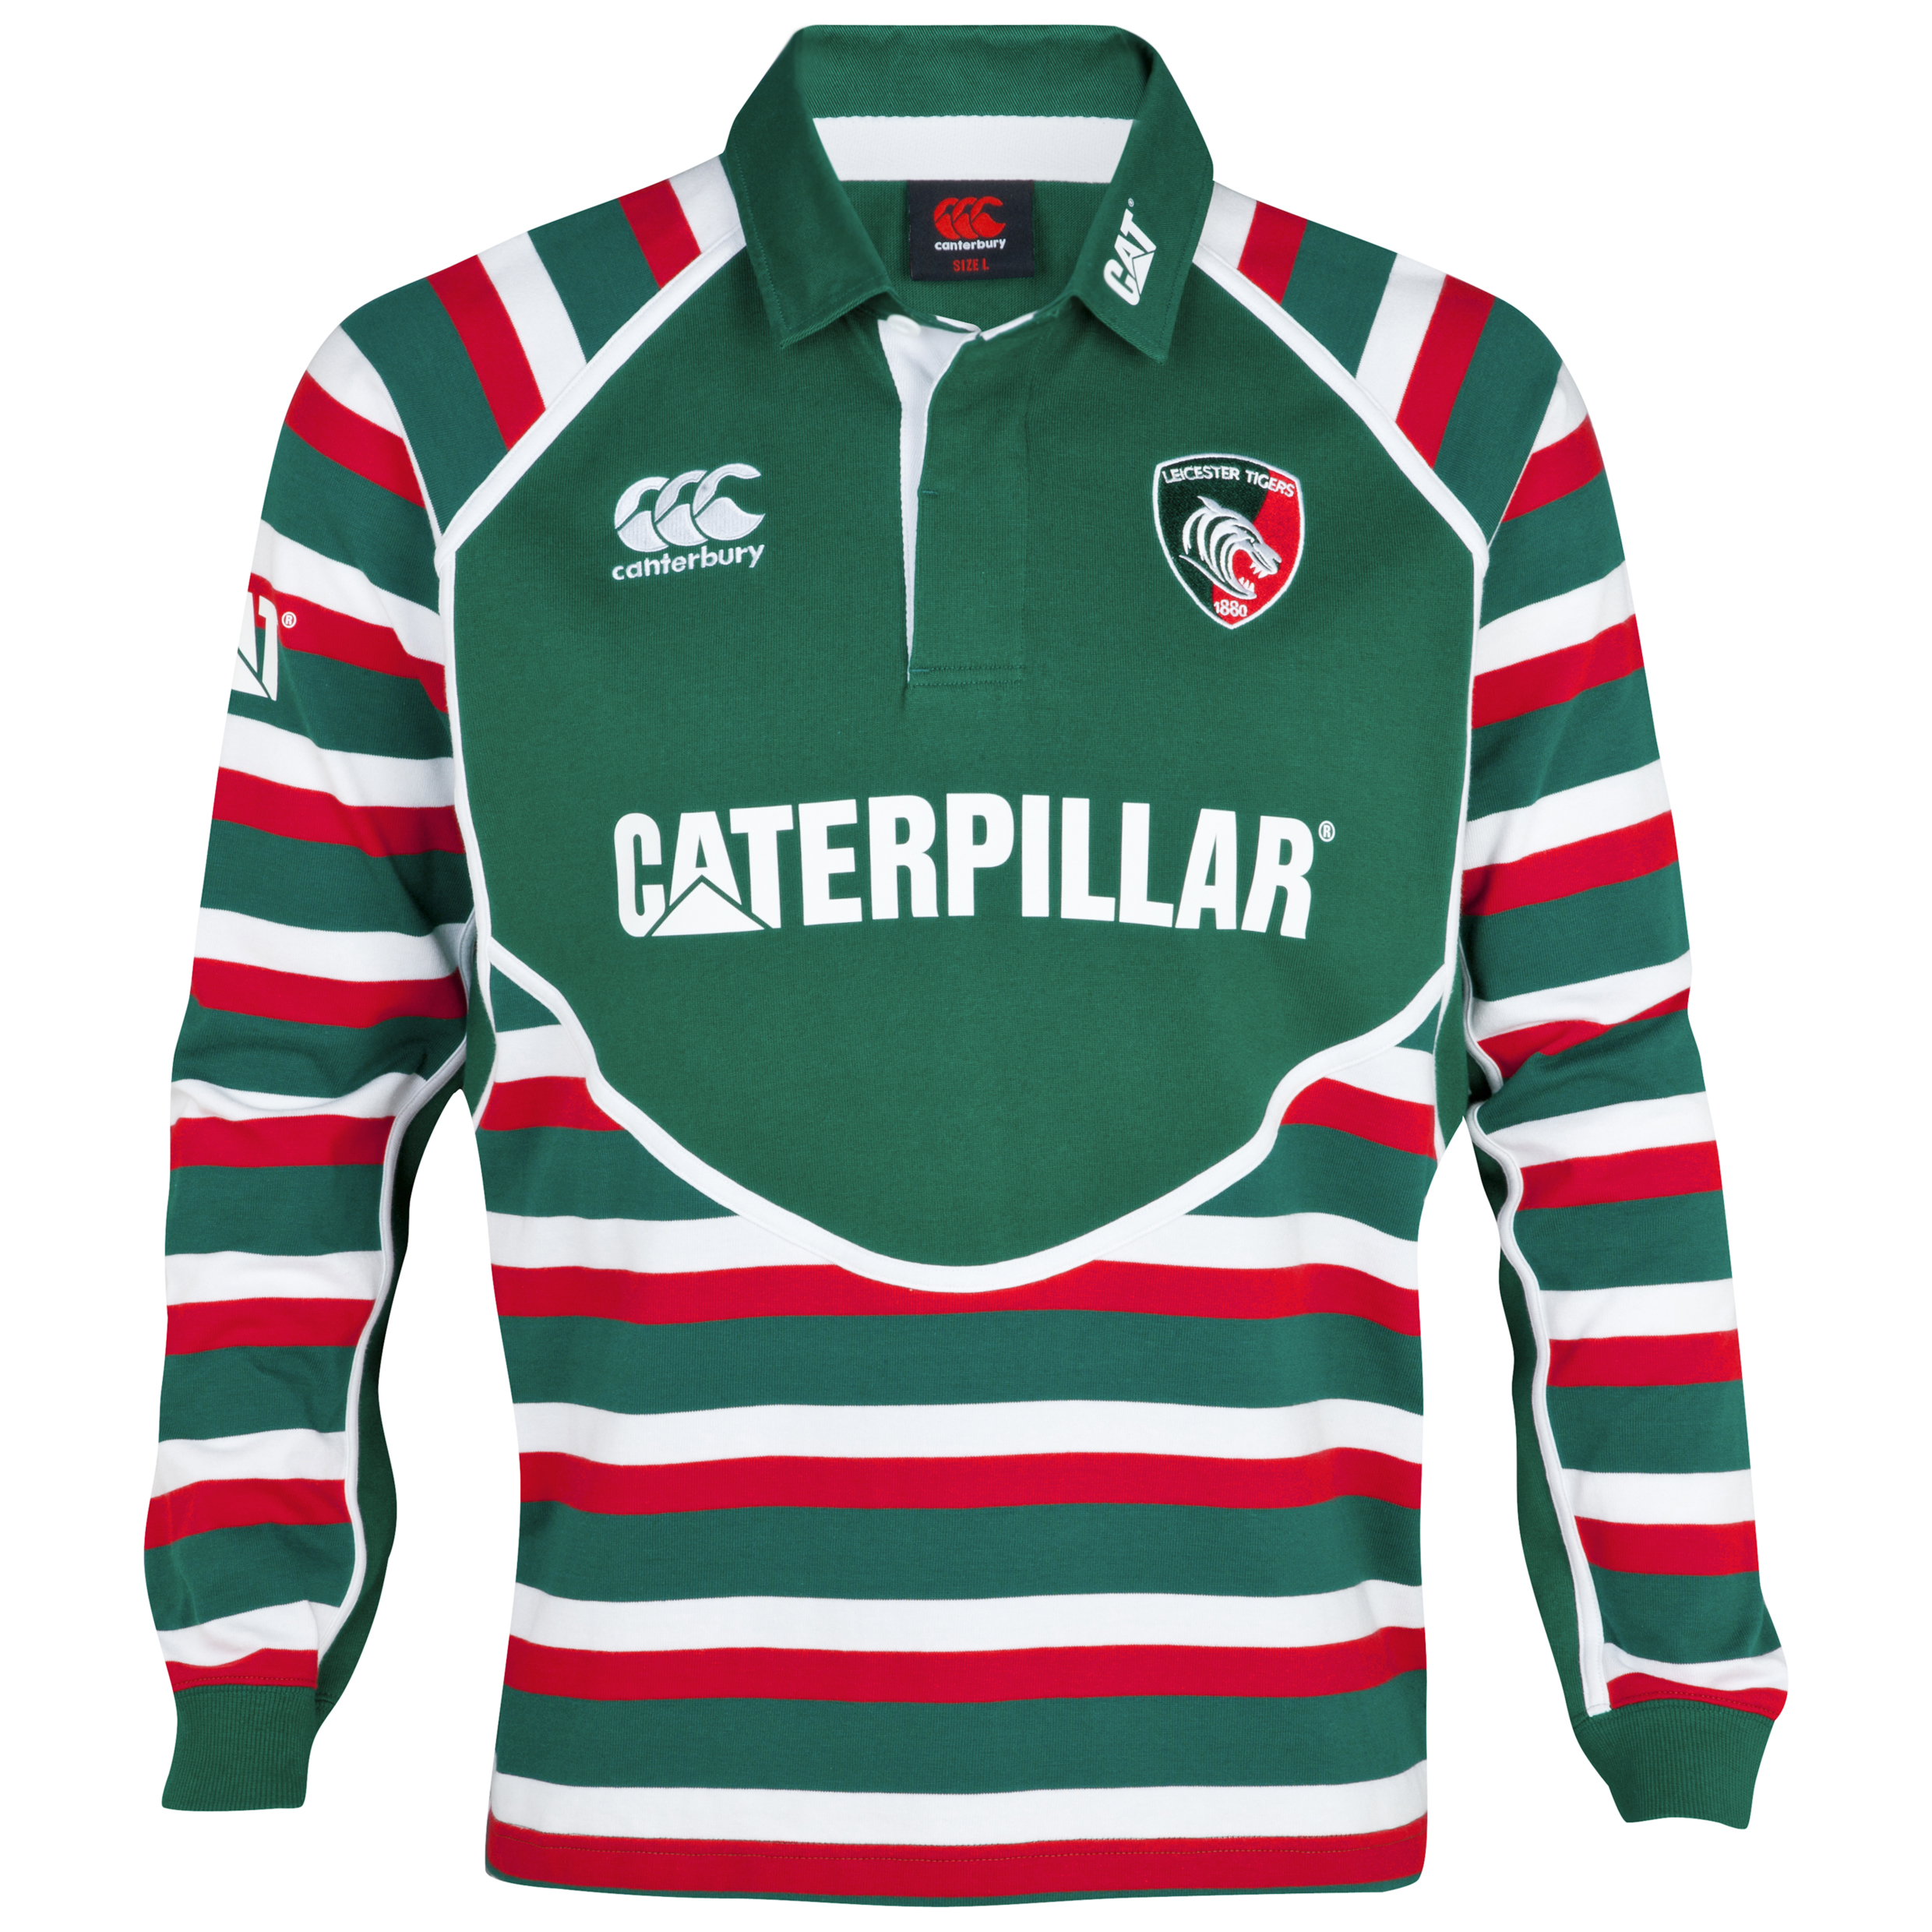 Leicester Tigers Home Classic Jersey 2012/13 - Long Sleeved